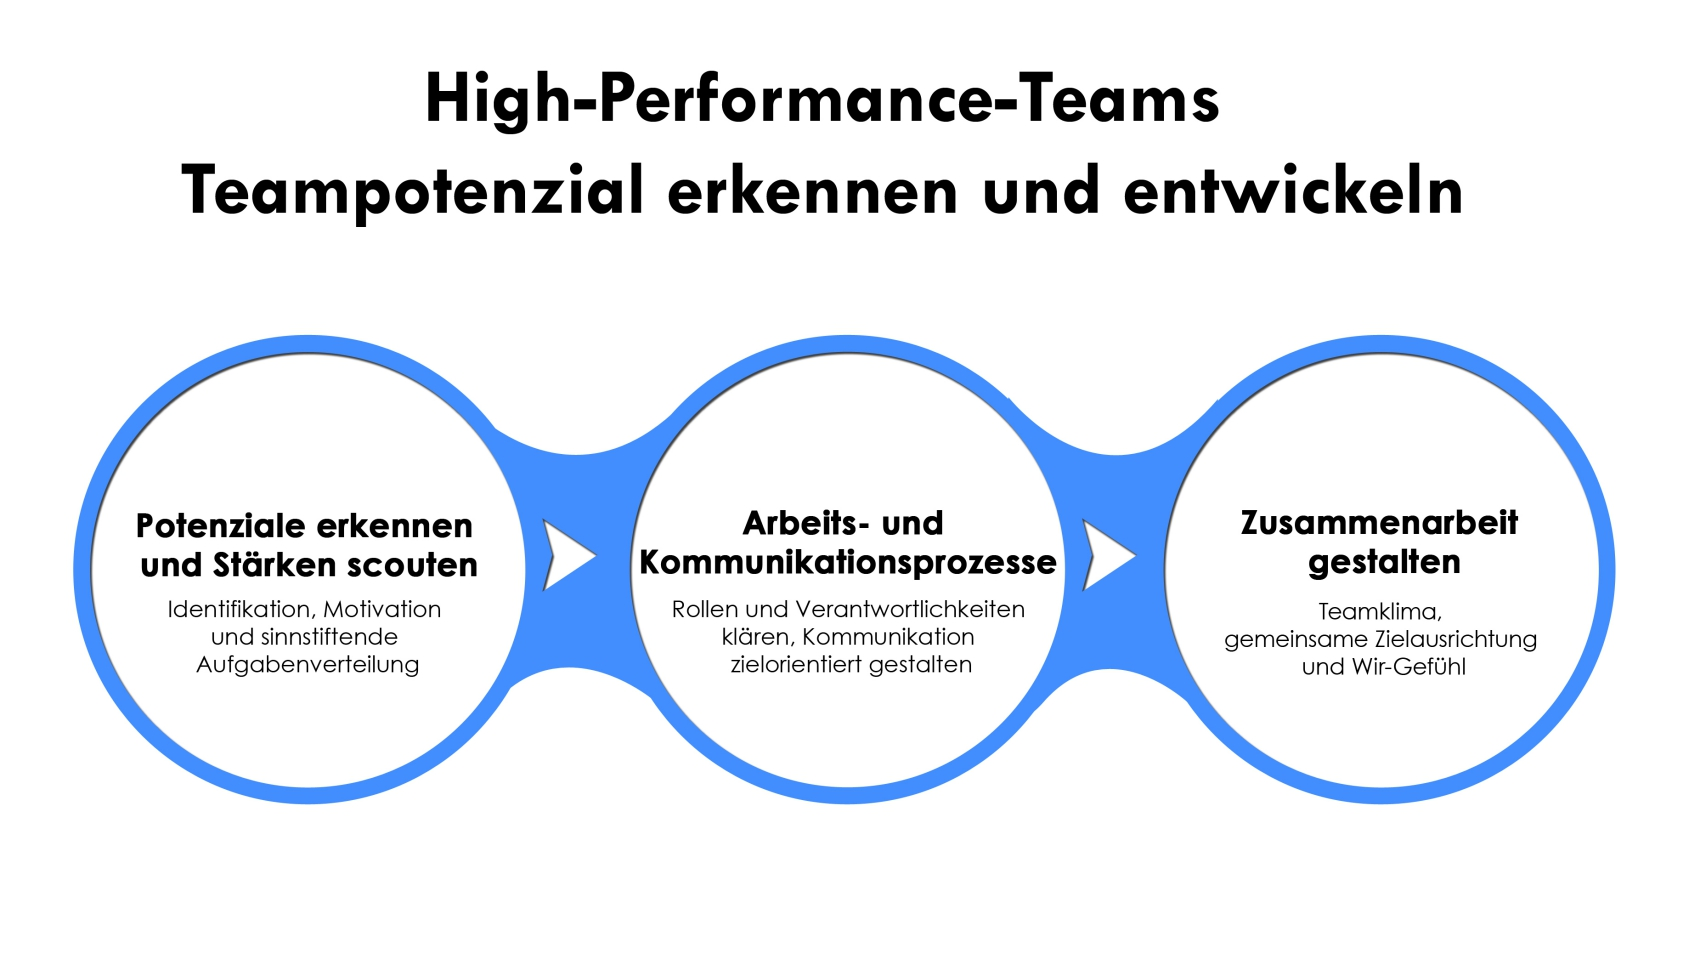 high-performance-teams Nicola Gragert